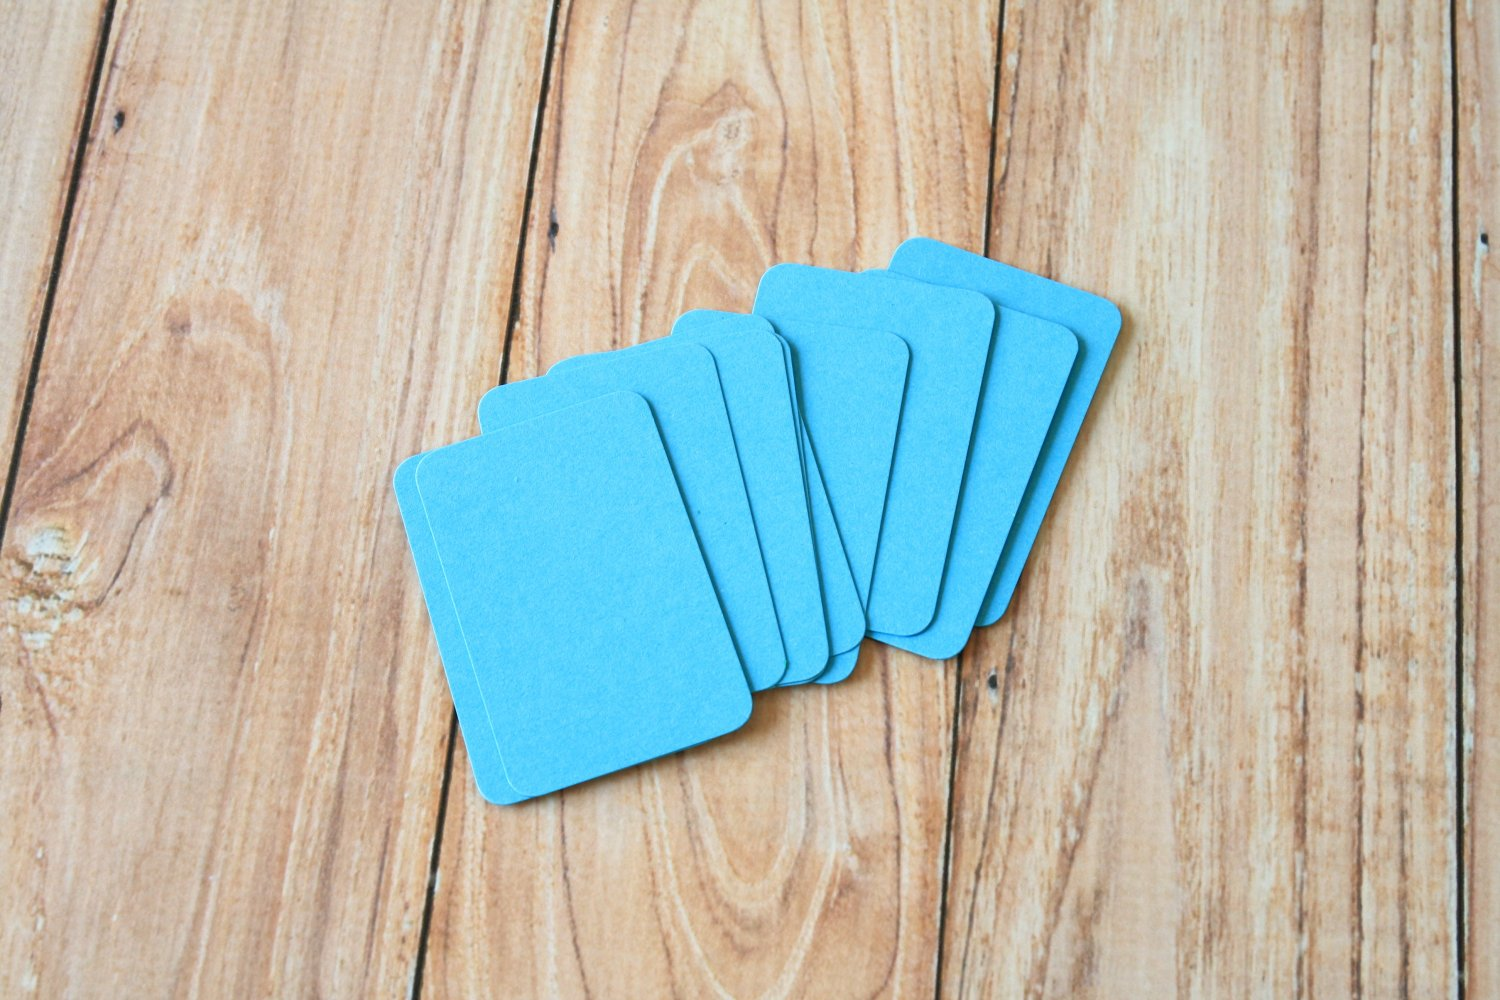 Aquamarine Blue blank business cards